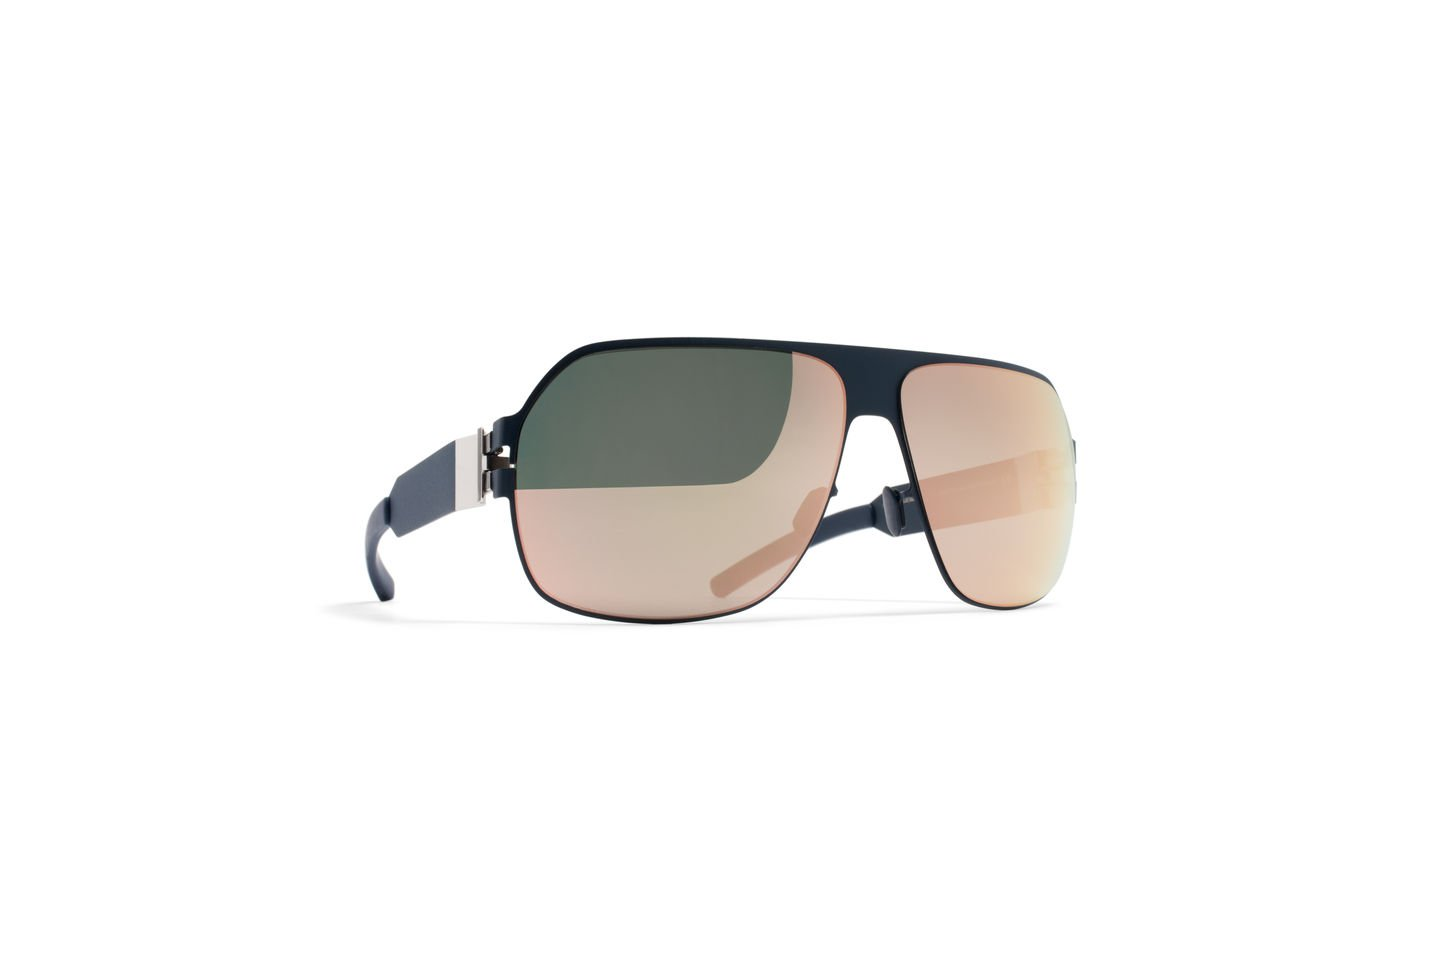 Sunglasses Mykita XAVER F65-Navyblue Bernhard Willhelm Collection Unisex Blue